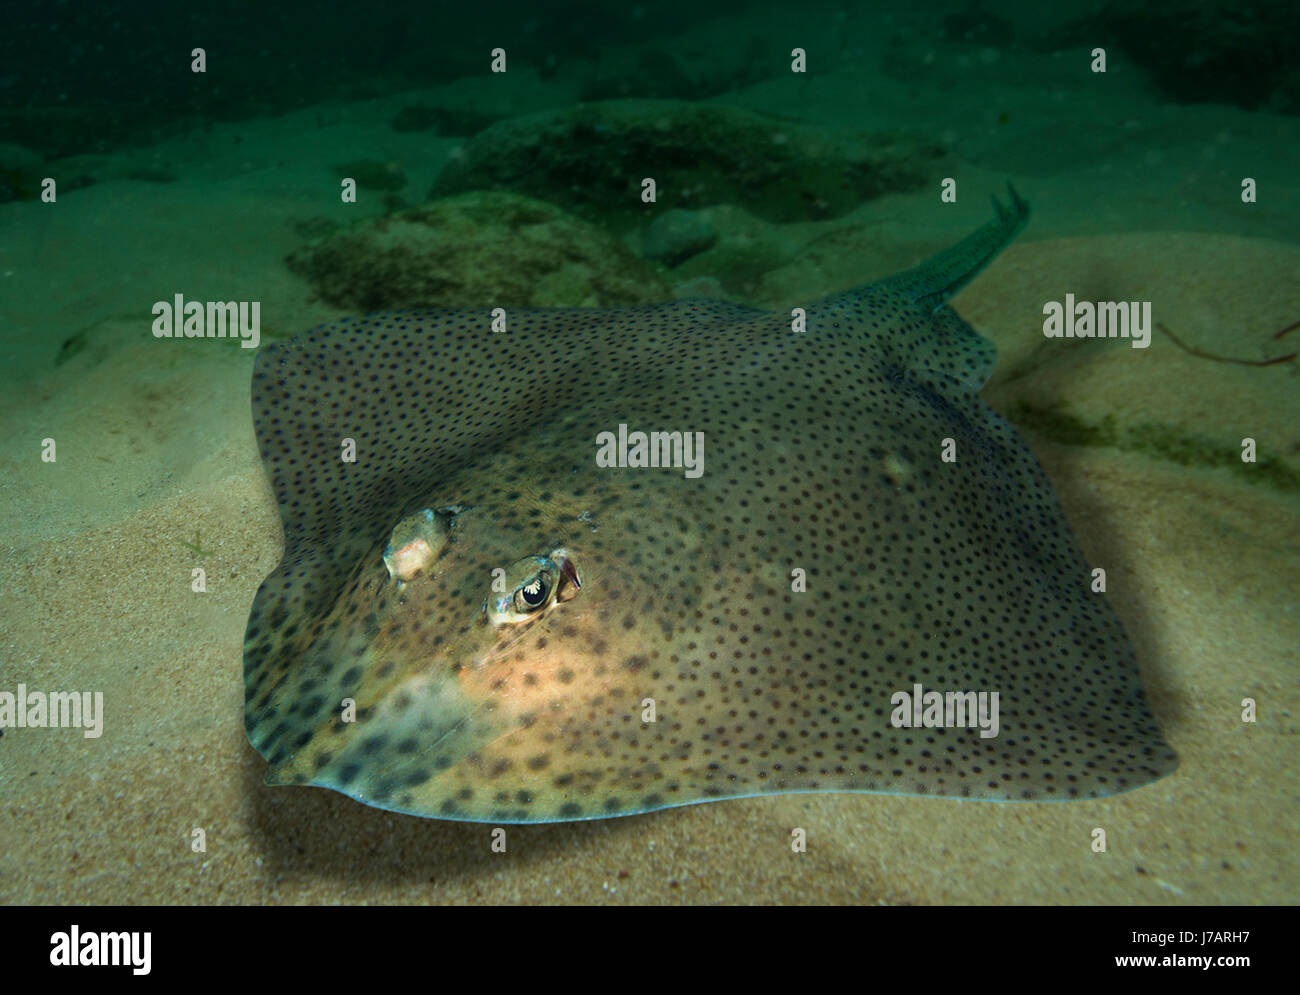 Blonde Ray, Raja brachyura. Portugal - Stock Image